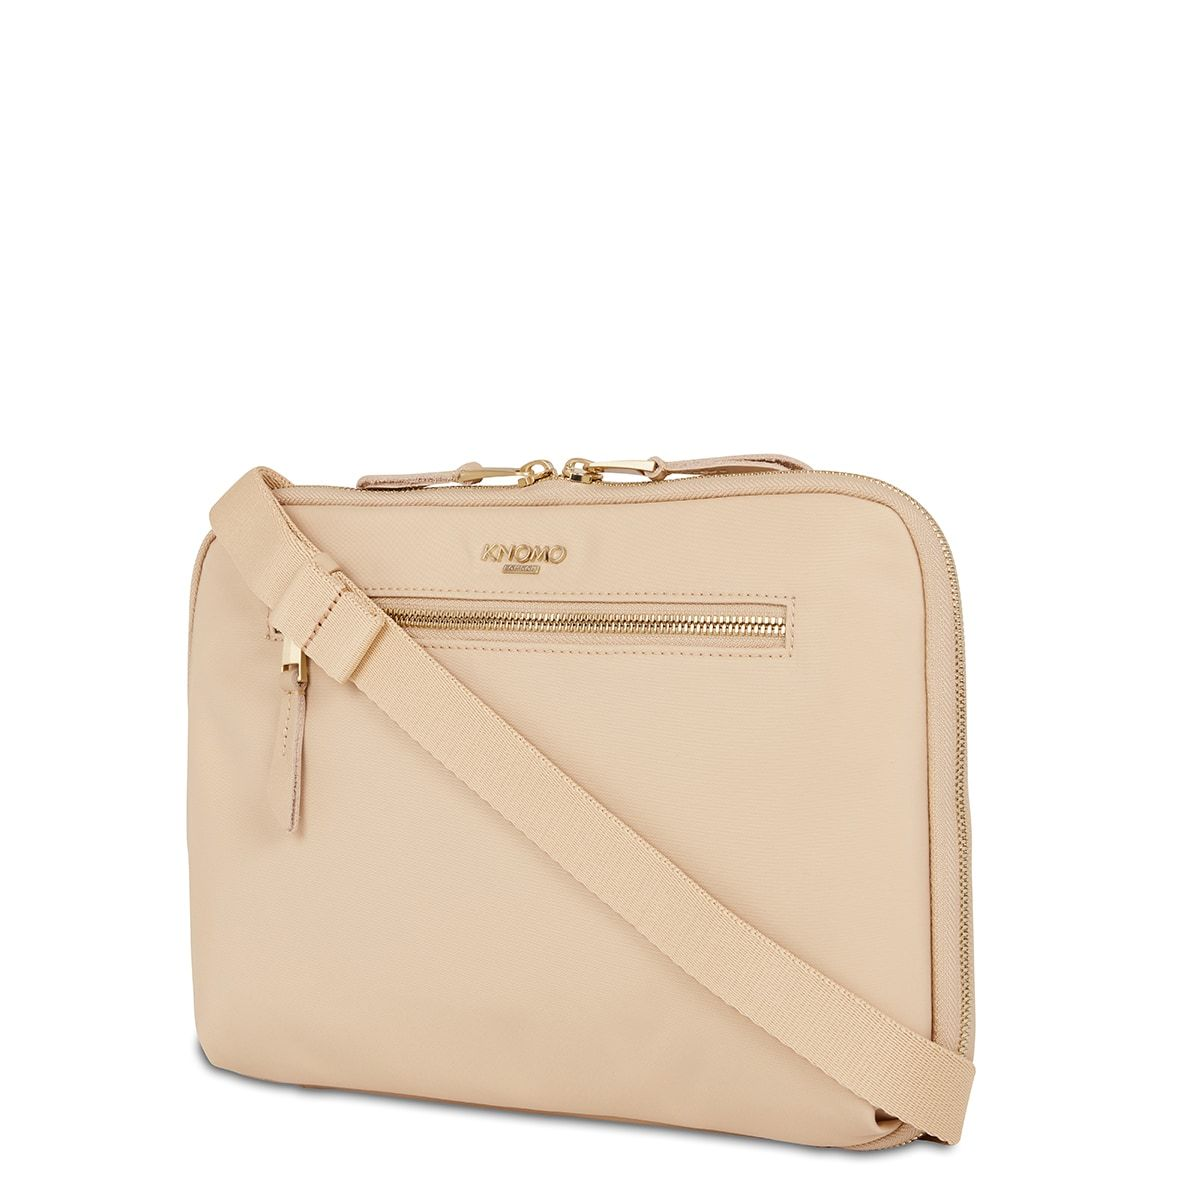 "KNOMO Knomad X-Body Organiser Tech Organiser Three Quarter View With Strap 10.5"" -  Trench Beige 